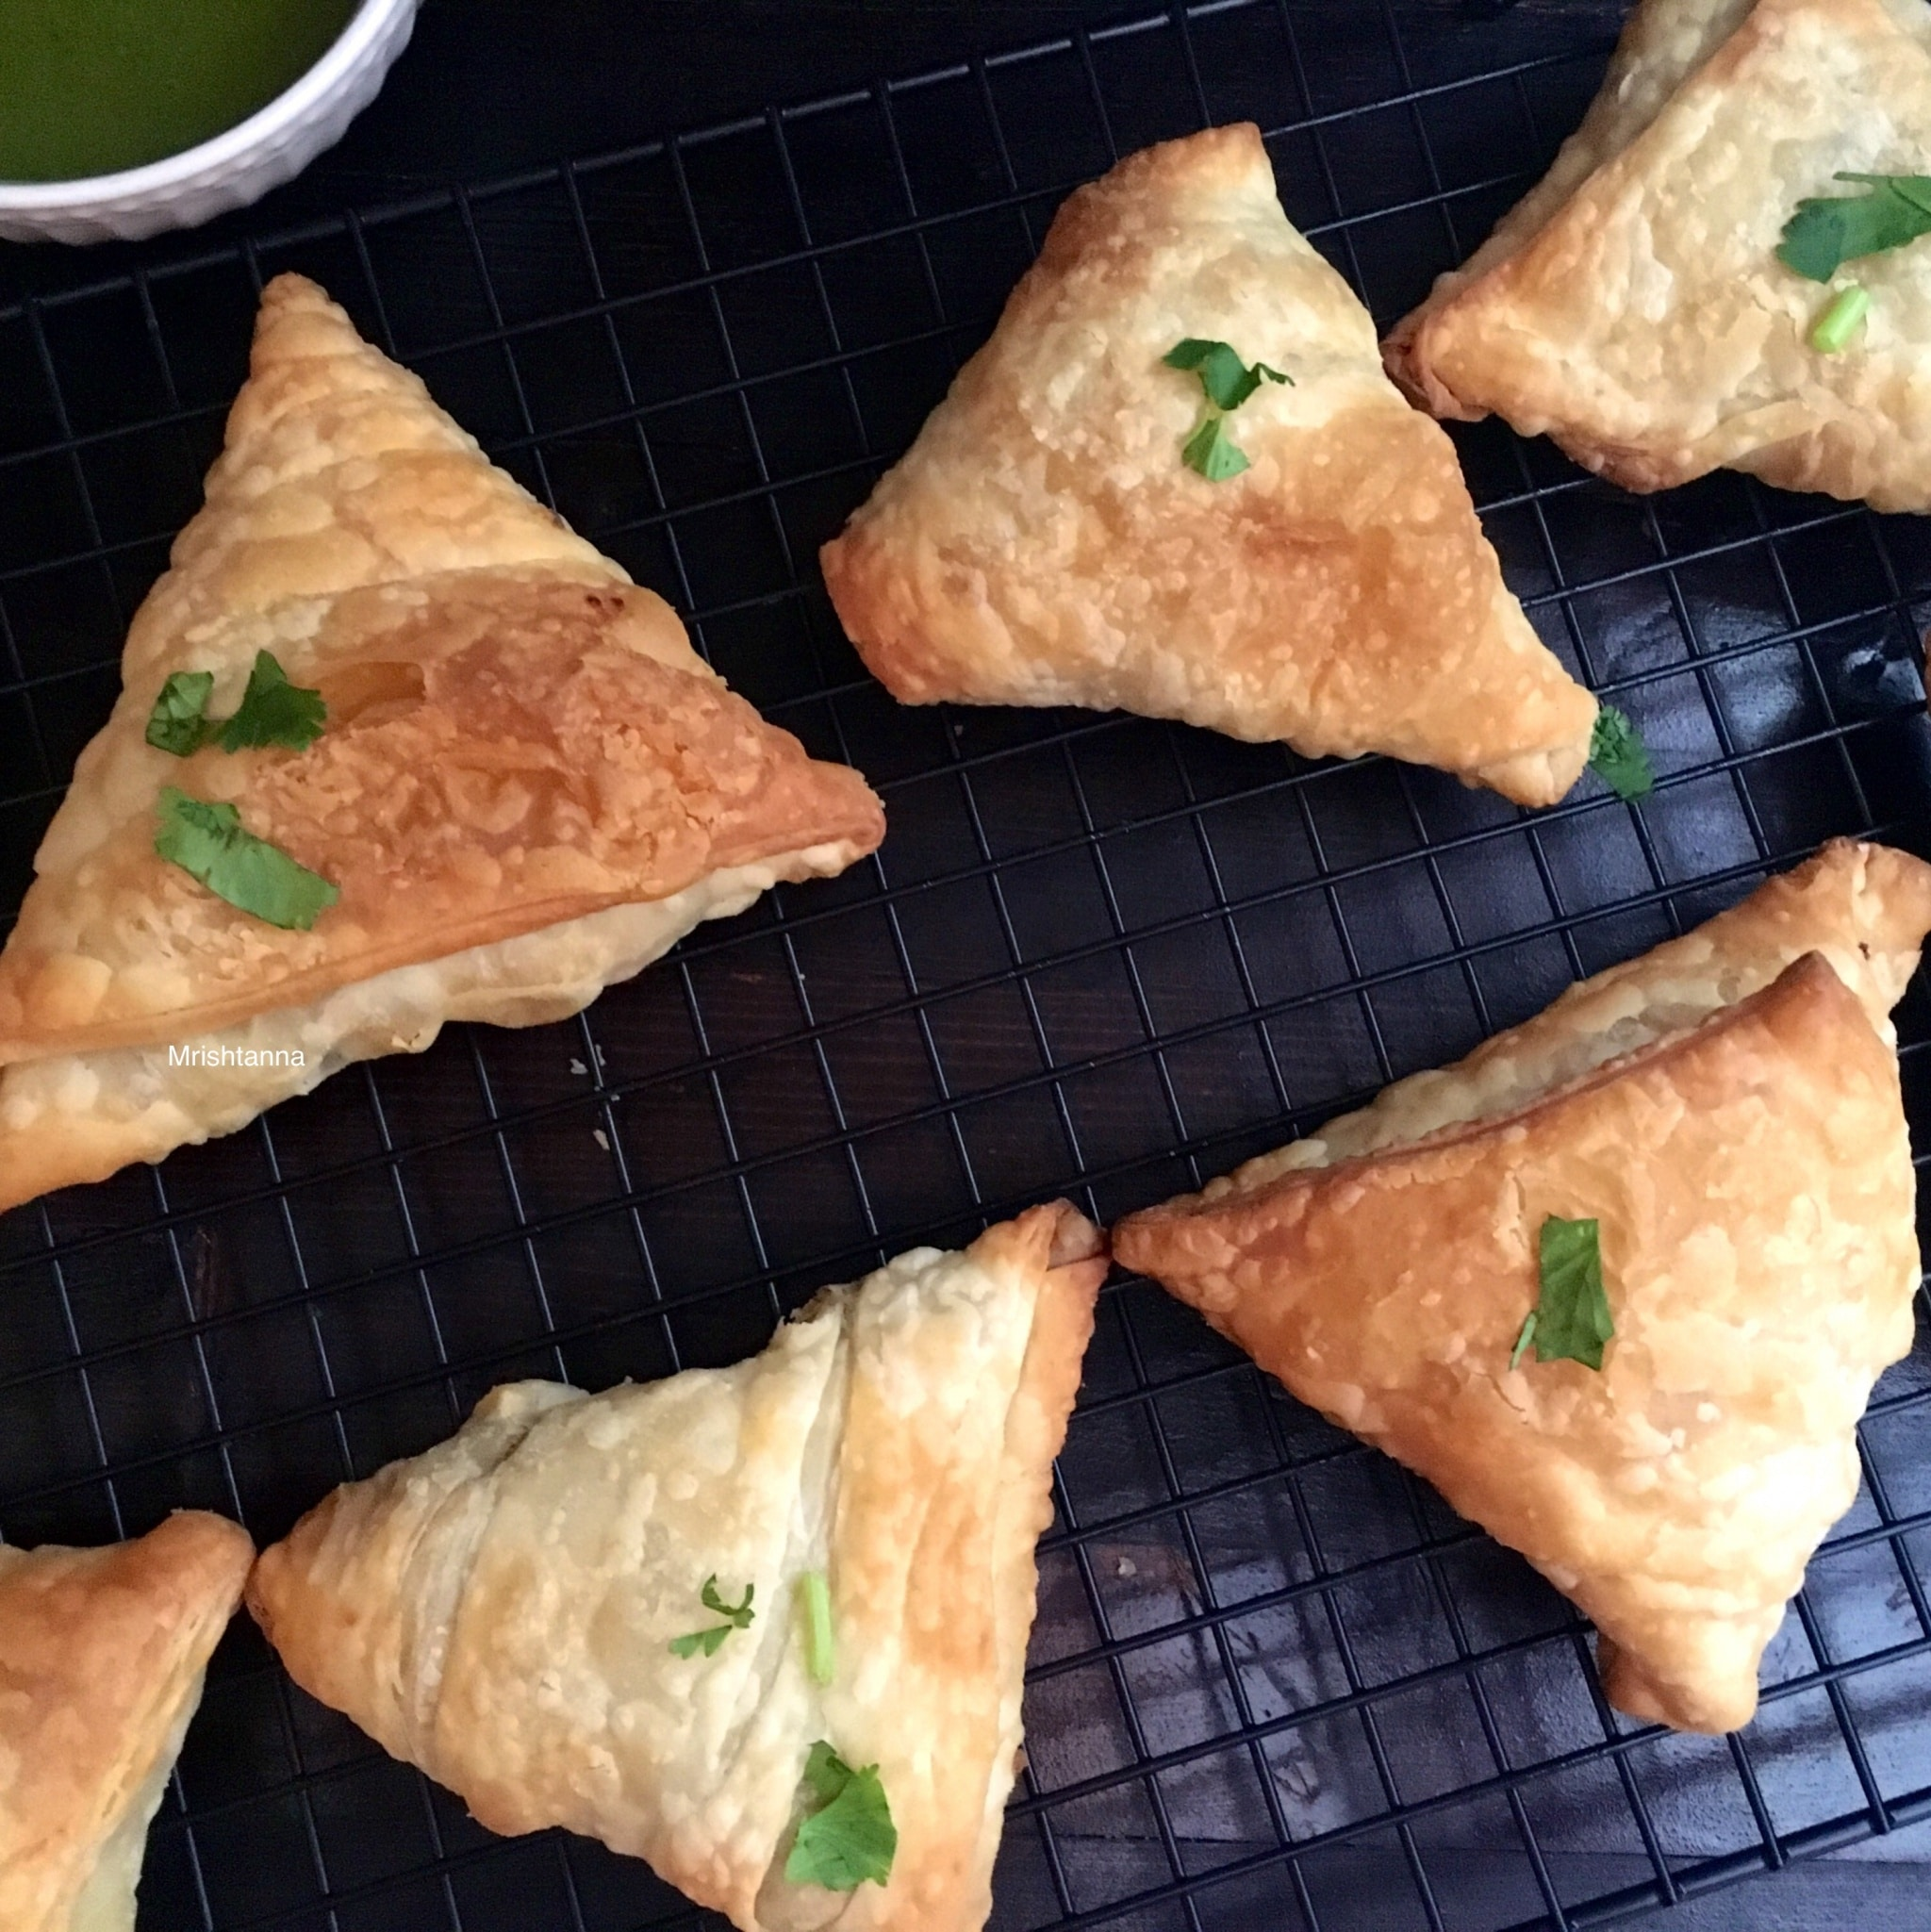 broccoli samosa are placed on the cooling rack